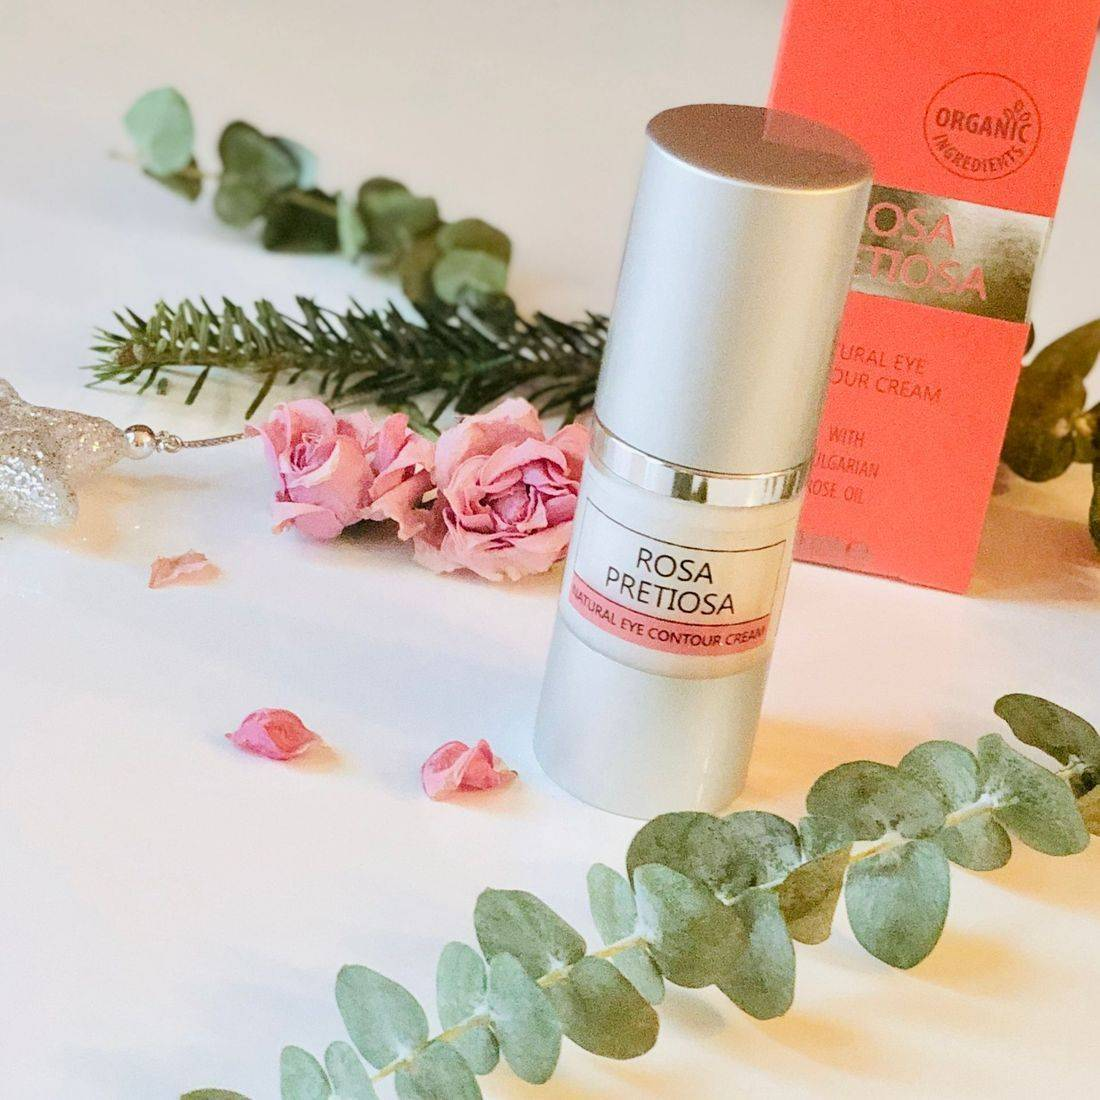 rose eye cream, rosa pretiosa skincare, organic skincare, best rose-infused beauty, rose water